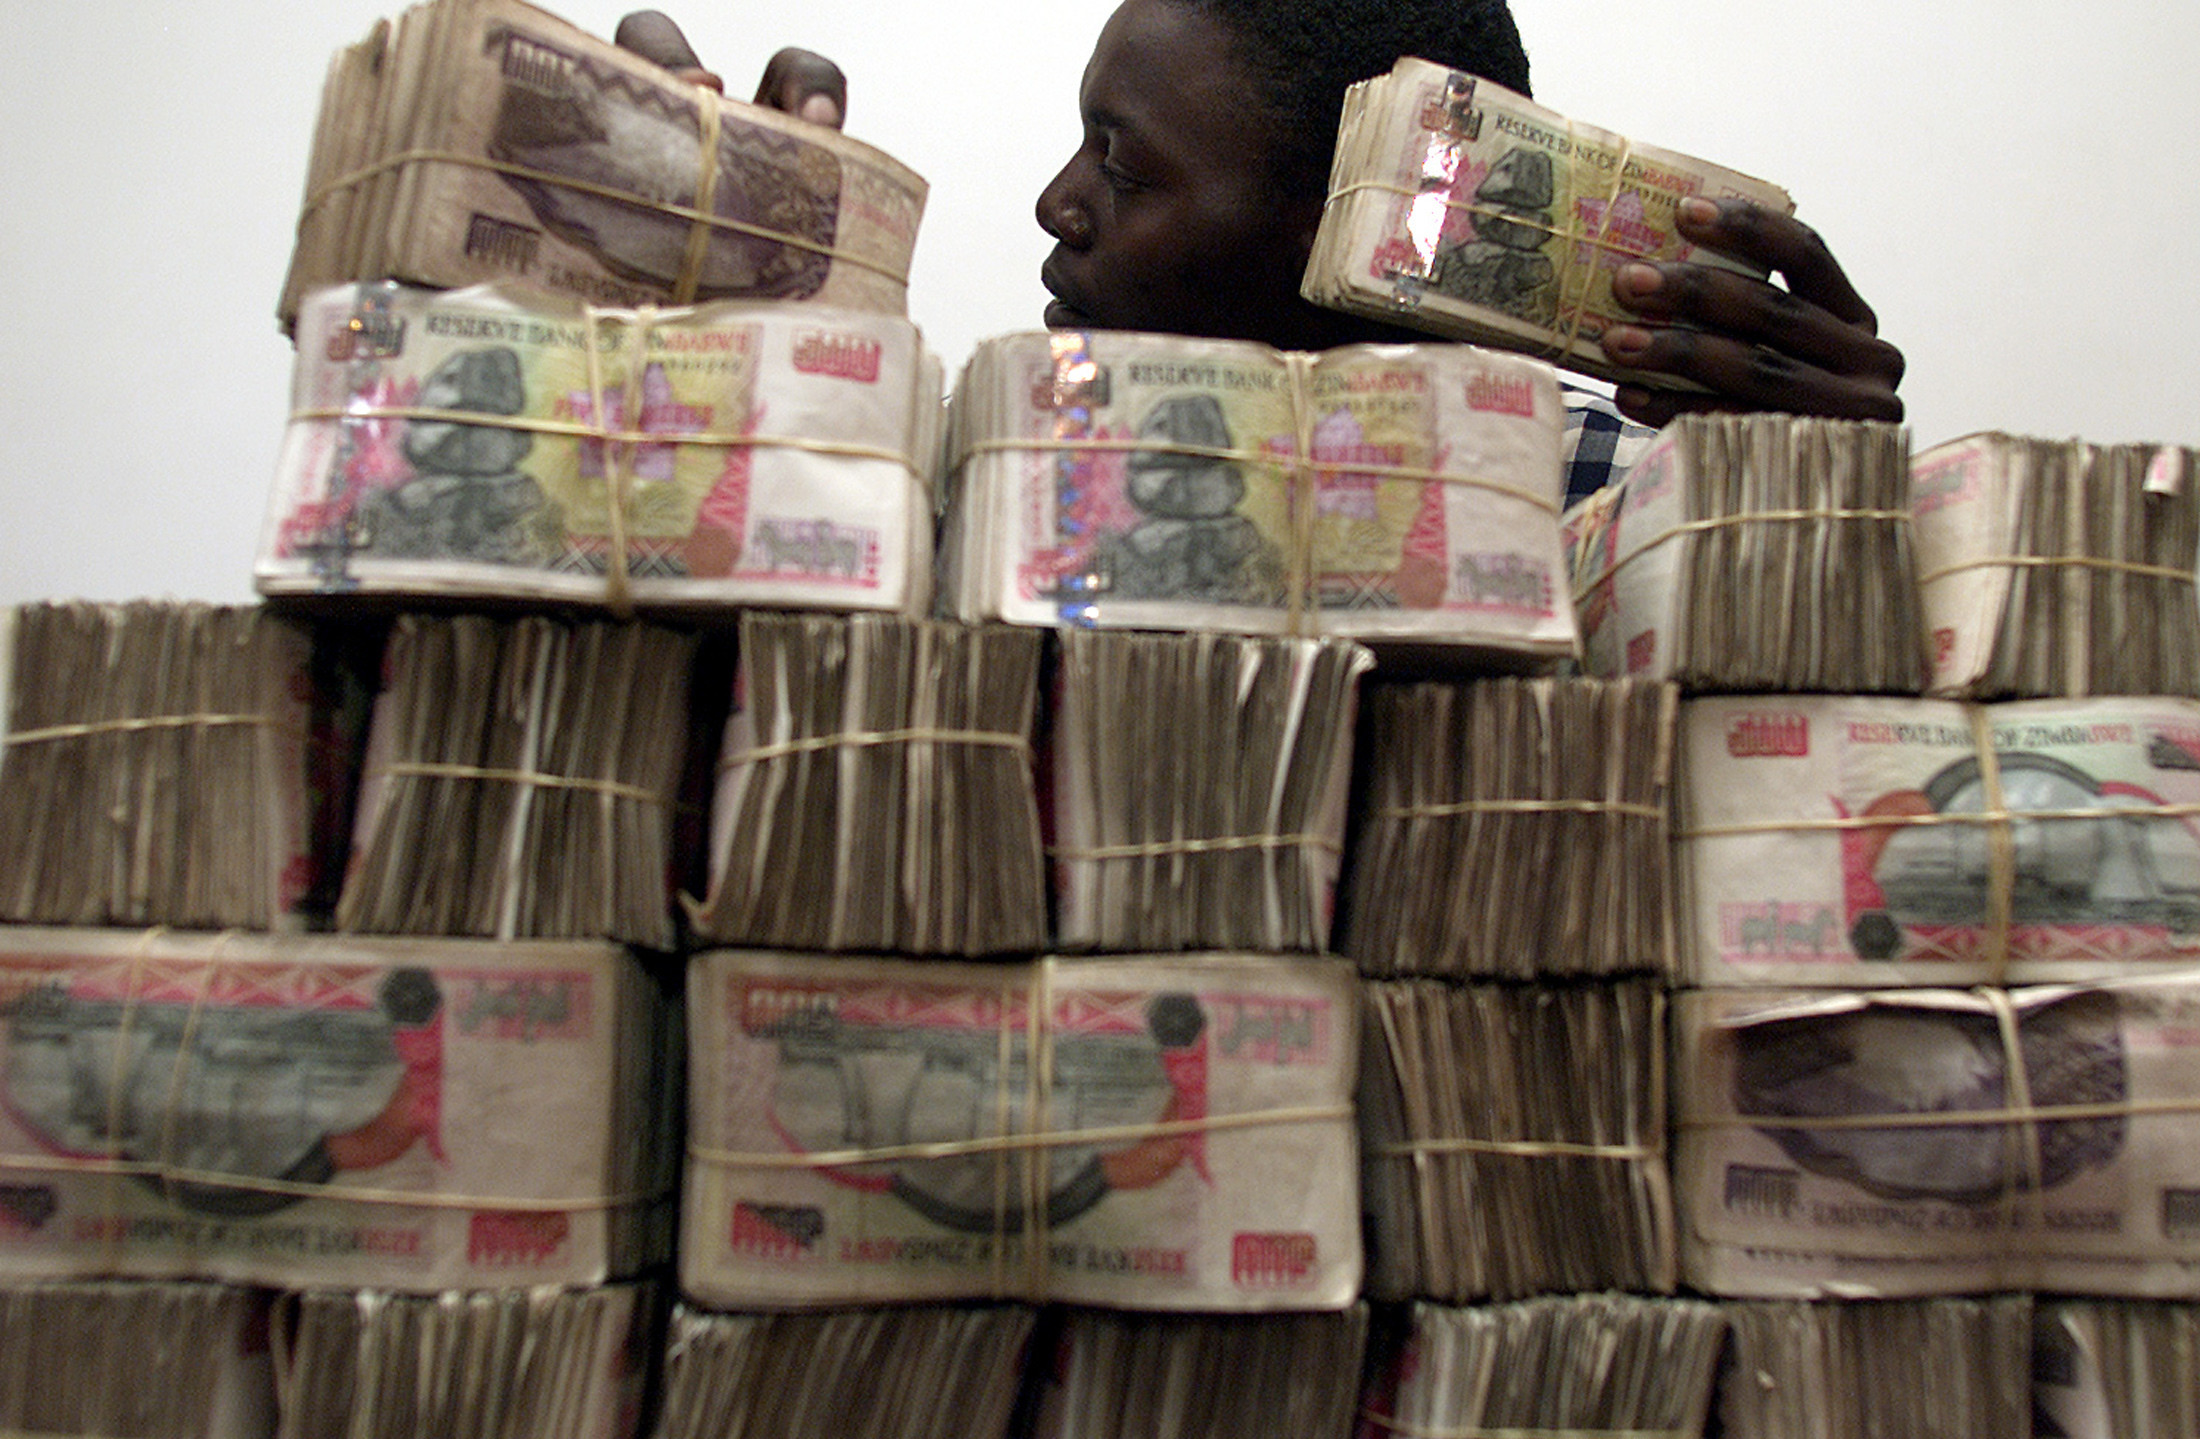 An unidentified Zimbabwean man piles up the black market equivalent ofUS$ 1000 (approximately 5 million Zimbabwe dollars) August 18, 2003.The government has outlawed the possession of cash in excess of 5million dollars from August 24, as it faces a critical shortage ofbanknotes due to hyper inflation in the crisis ridden country.(ZIMBABWE OUT) REUTERS/Howard BurdittHB/AA - RP4DRHYASMAC